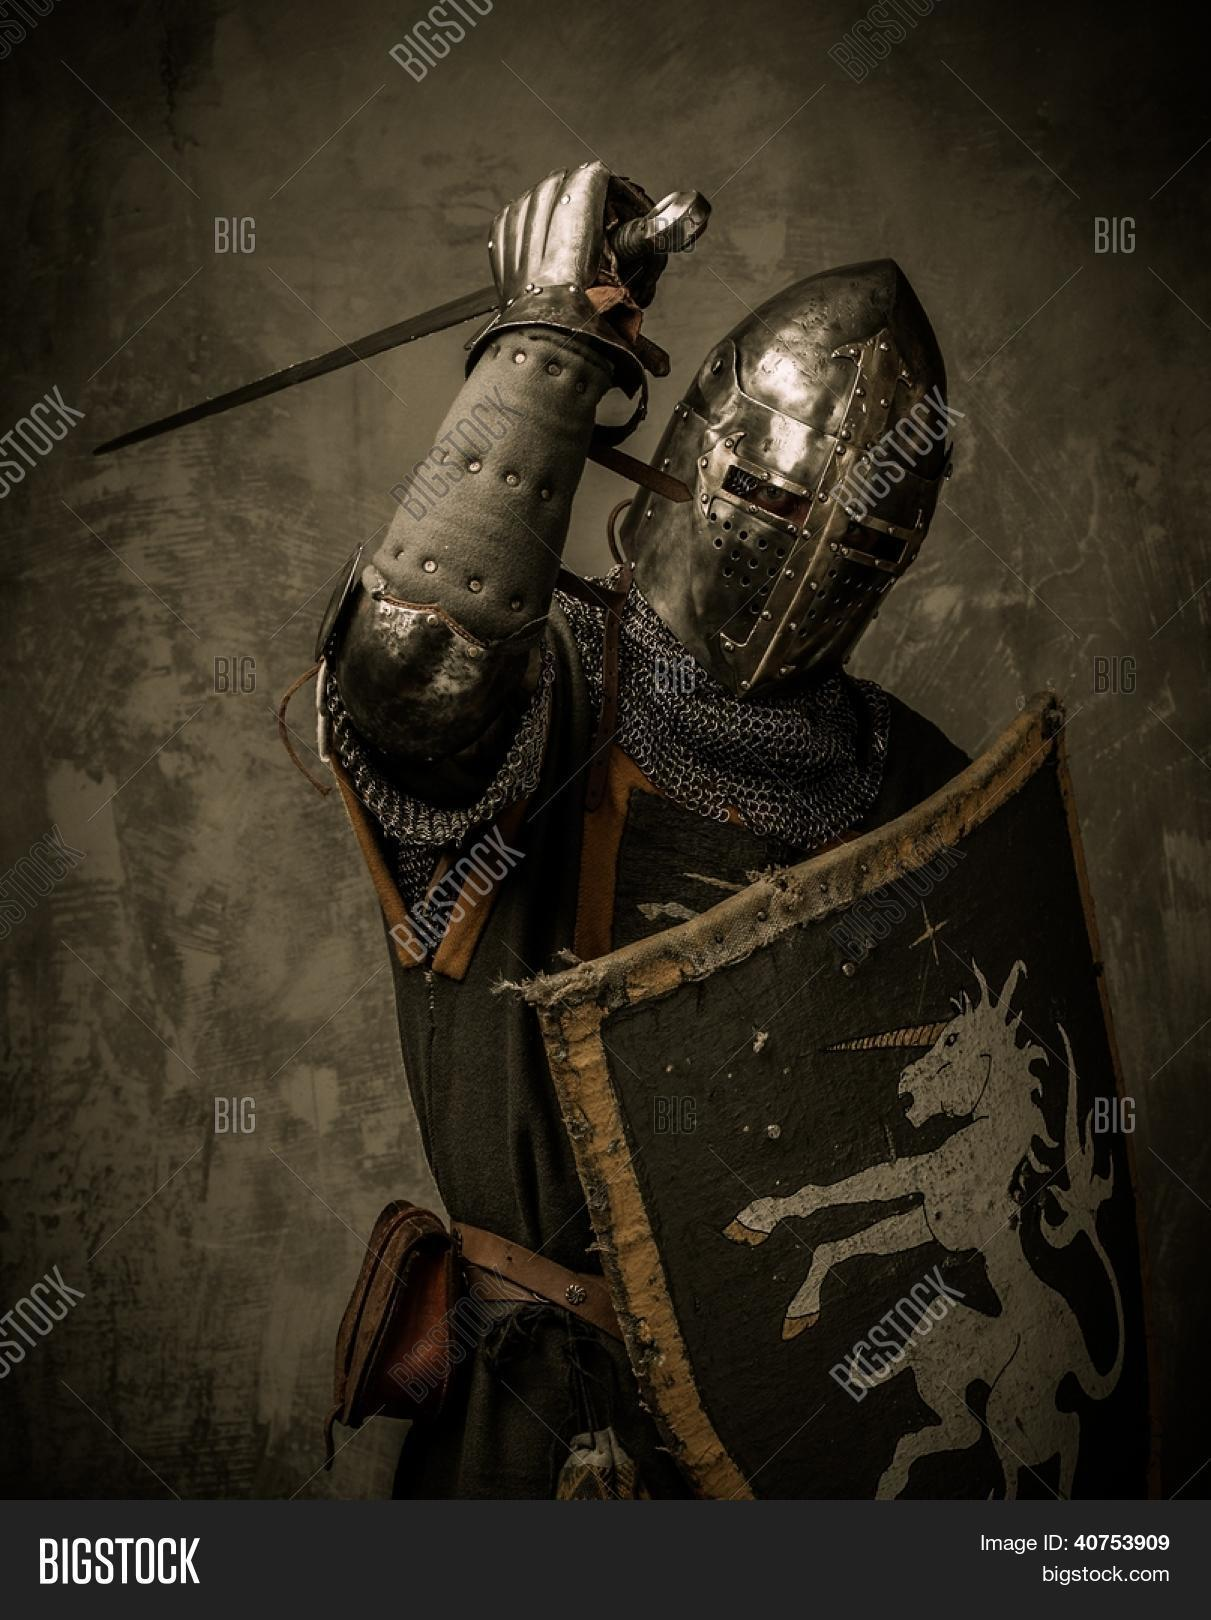 Medieval Knight Sword Shield Image & Photo | Bigstock